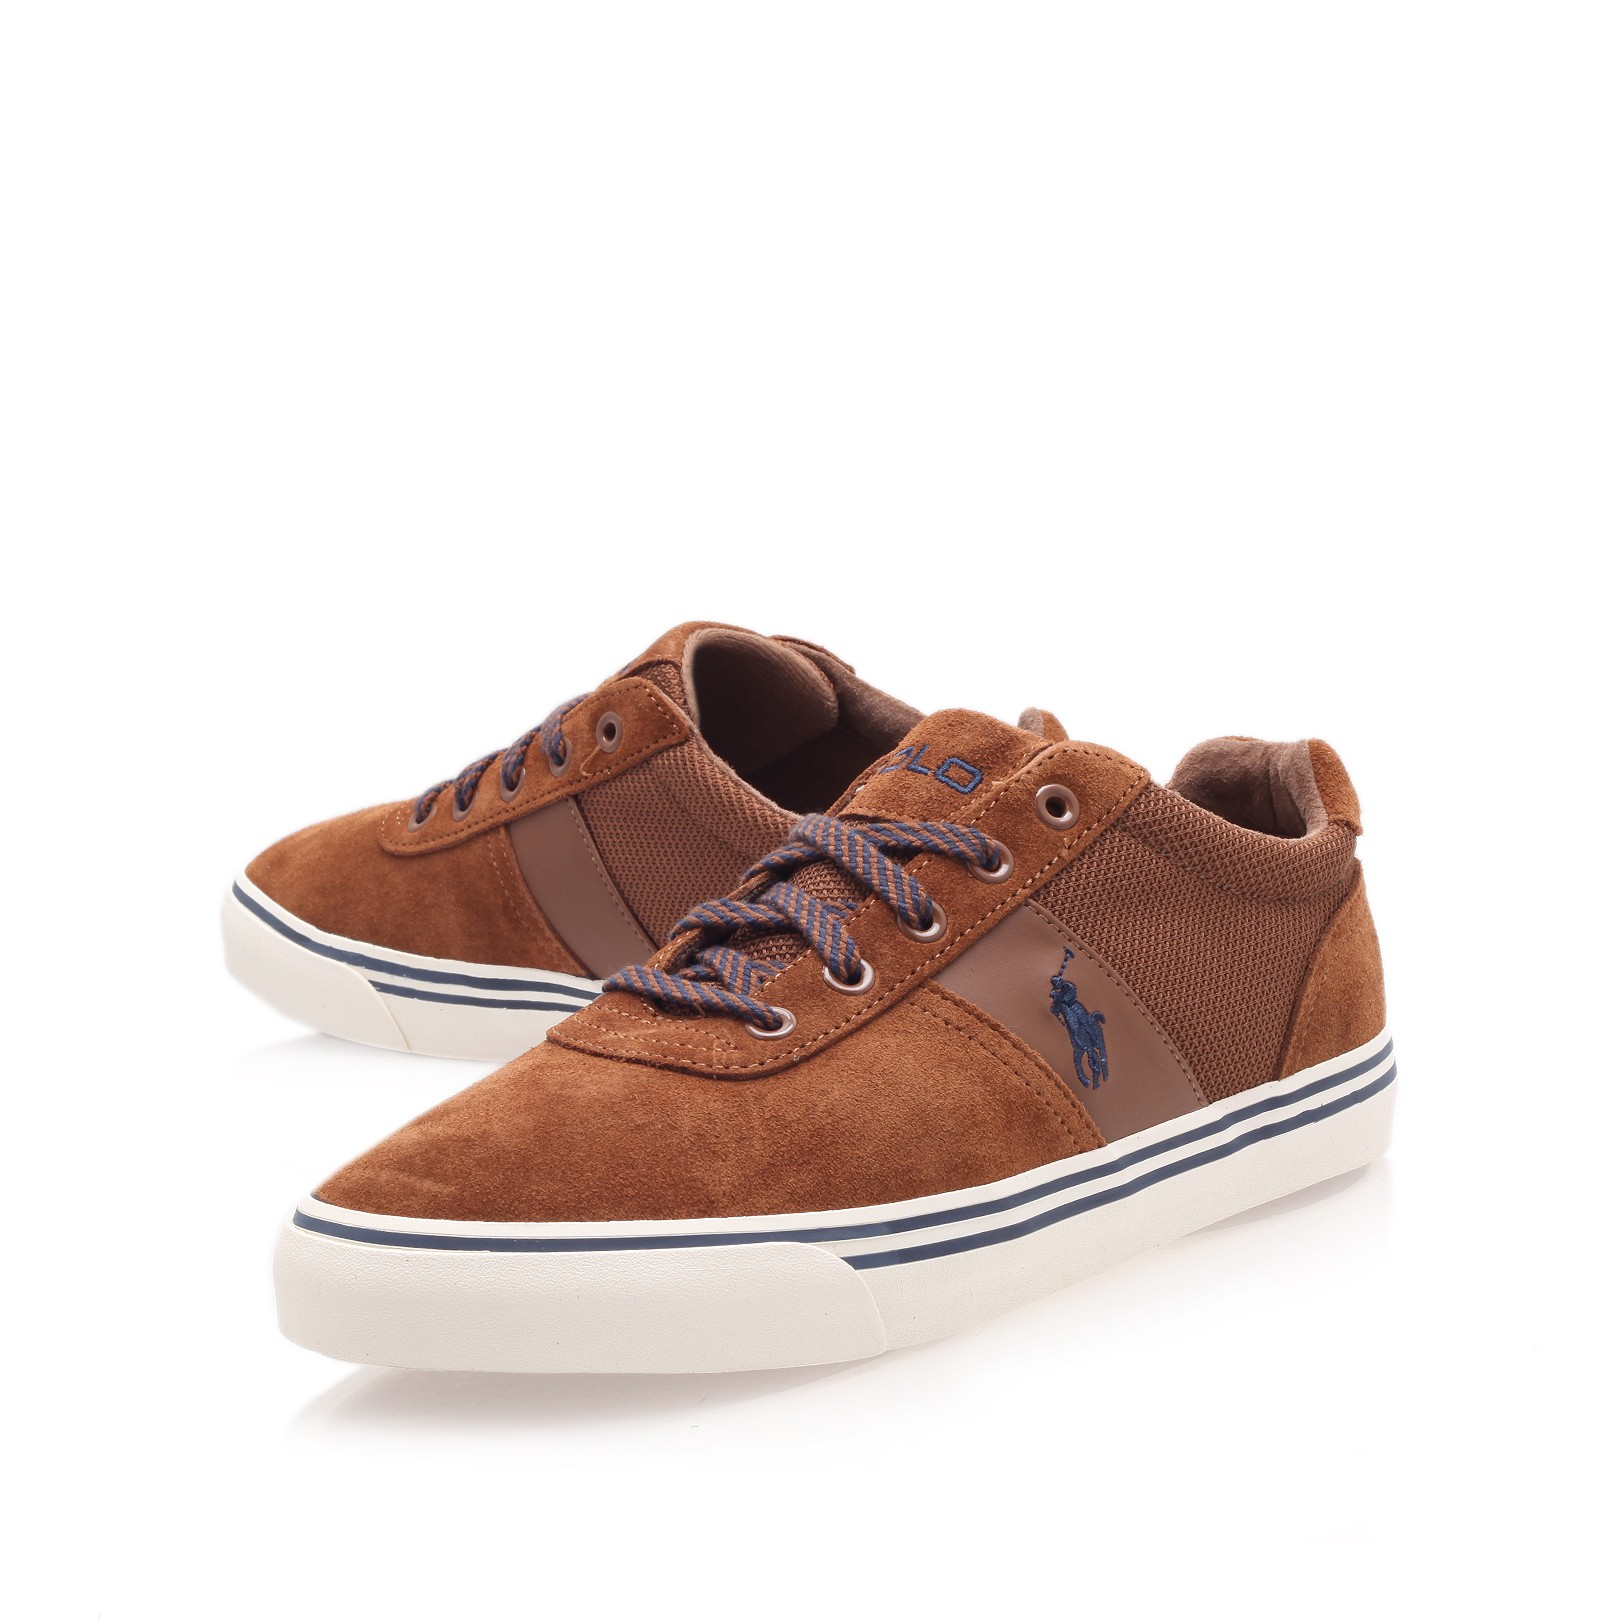 88a3dca9f09 Polo Ralph Lauren Hanford Suede Sneaker in Brown for Men - Lyst